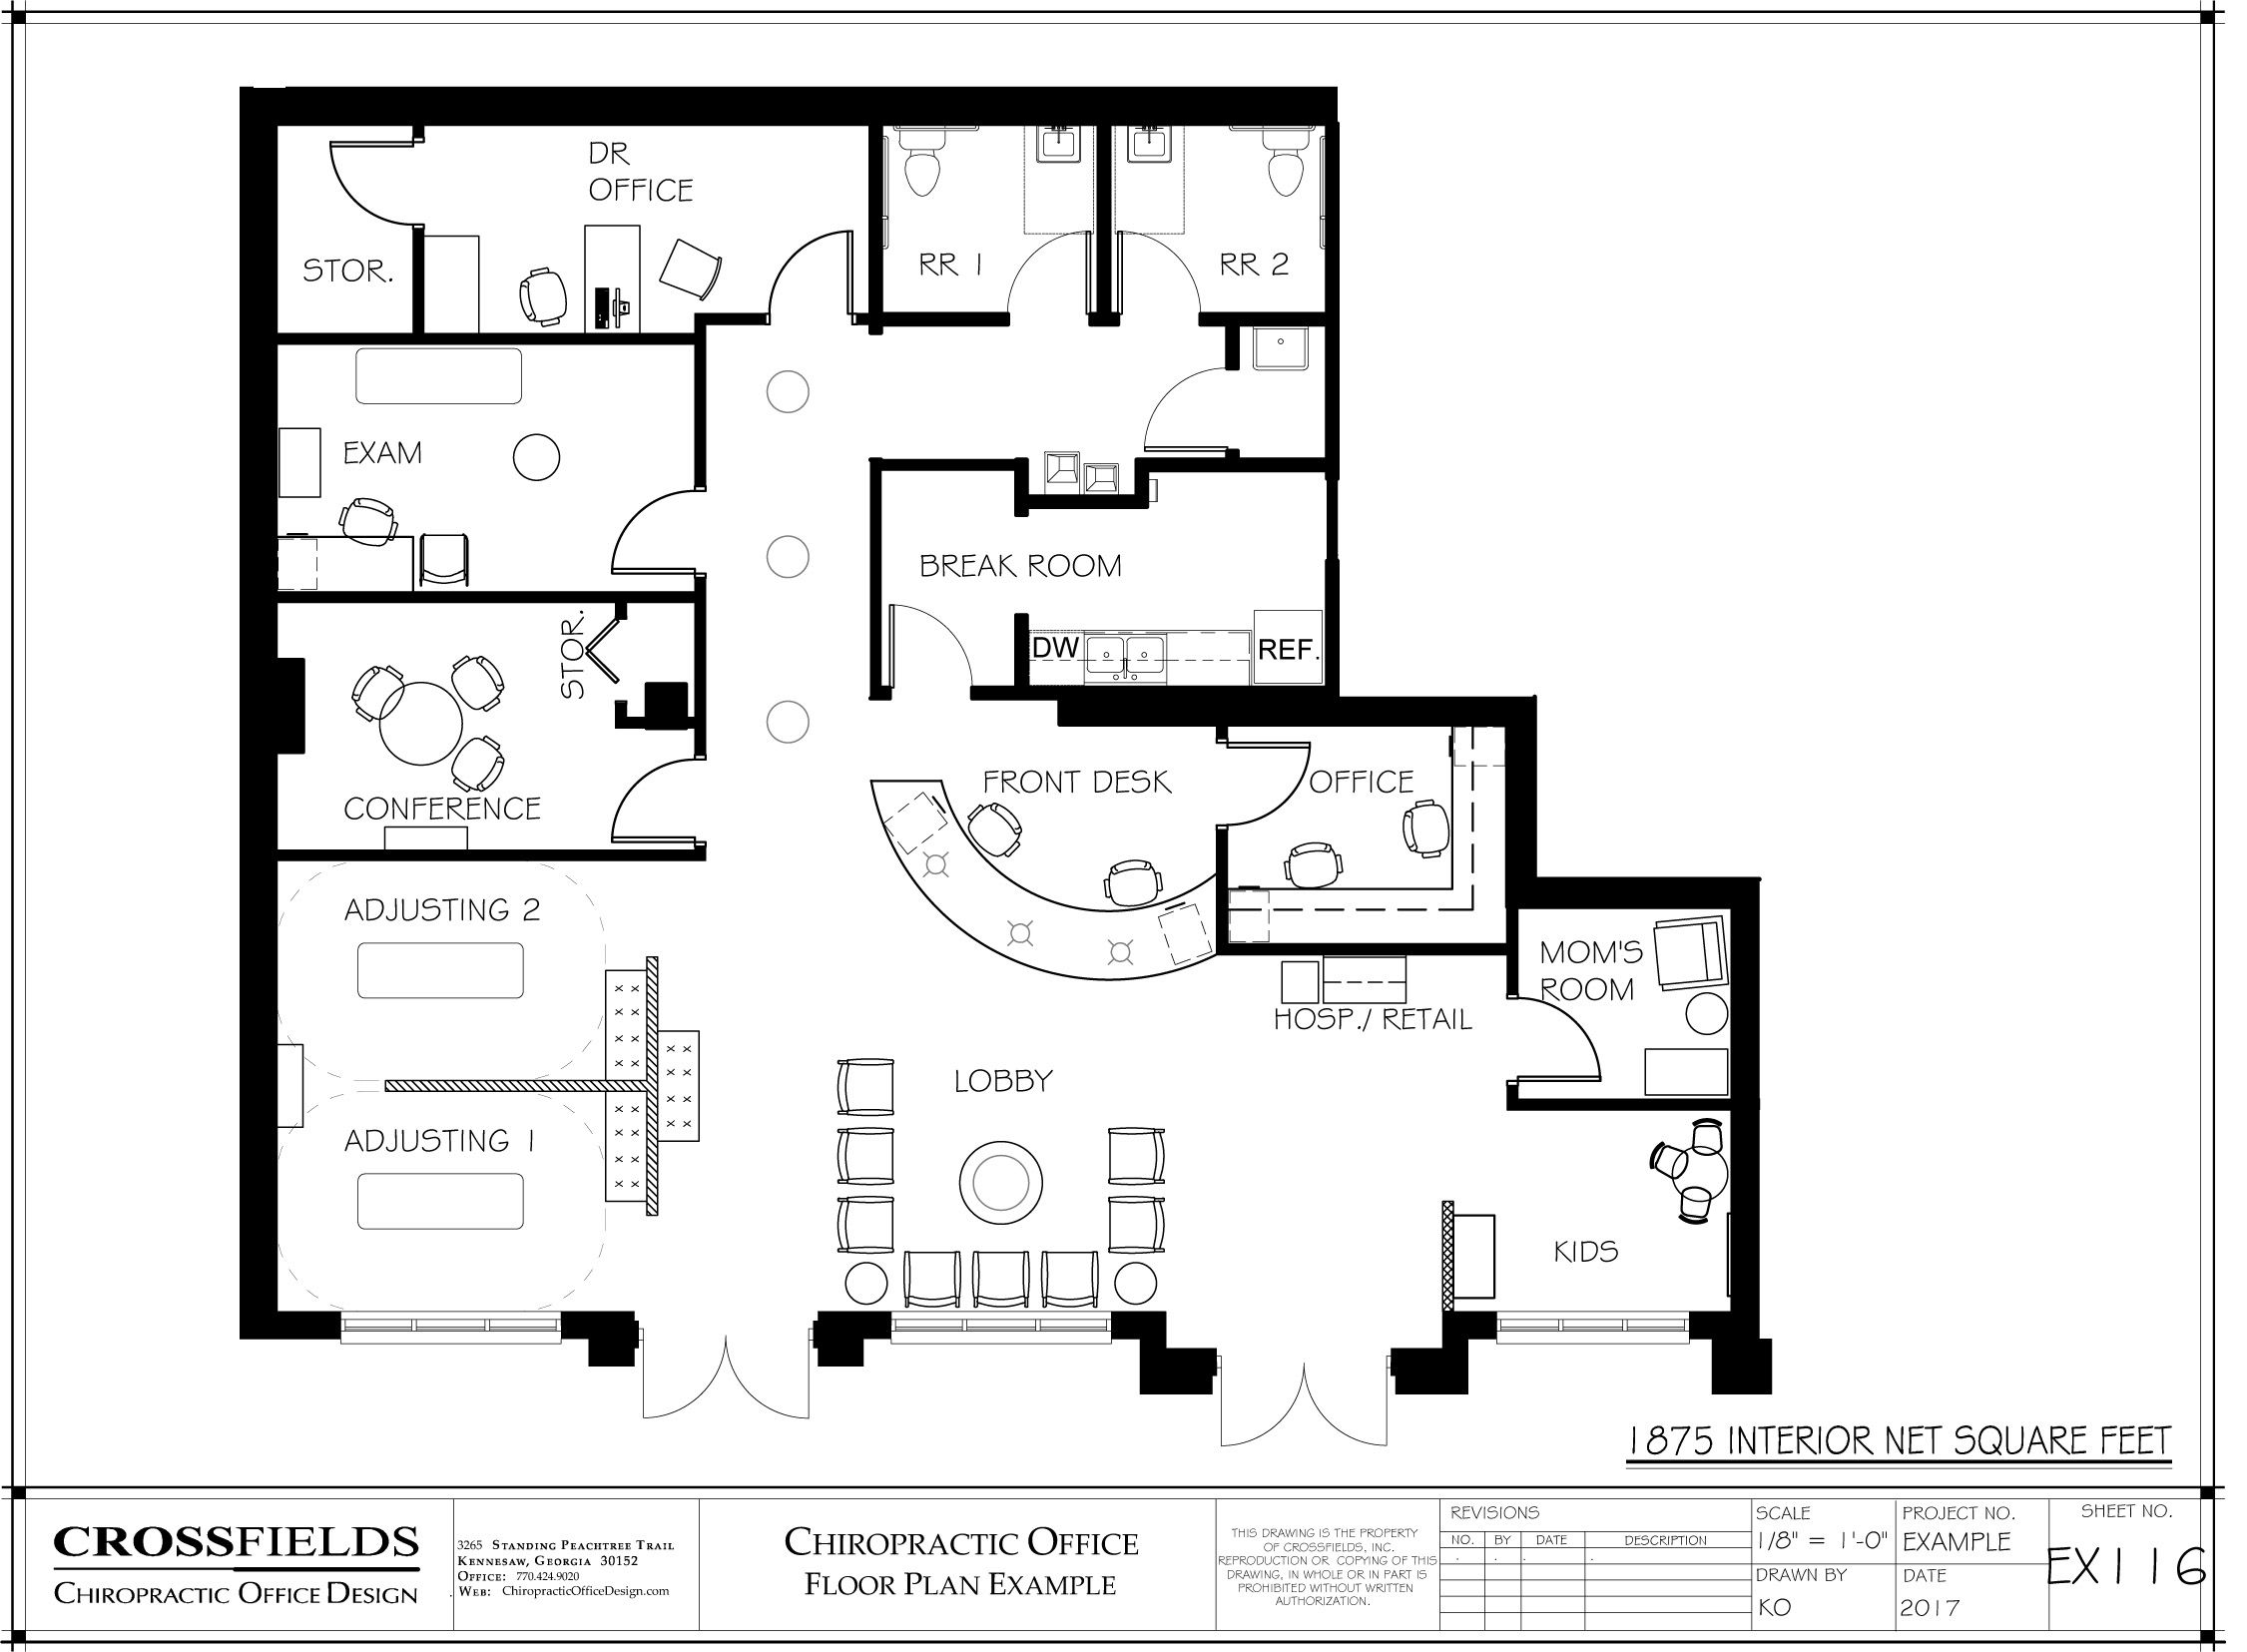 Chiropractic Family Centered Clinic Floor Plan Example With Semi Open  Adjusting Doctors Office Small Exam